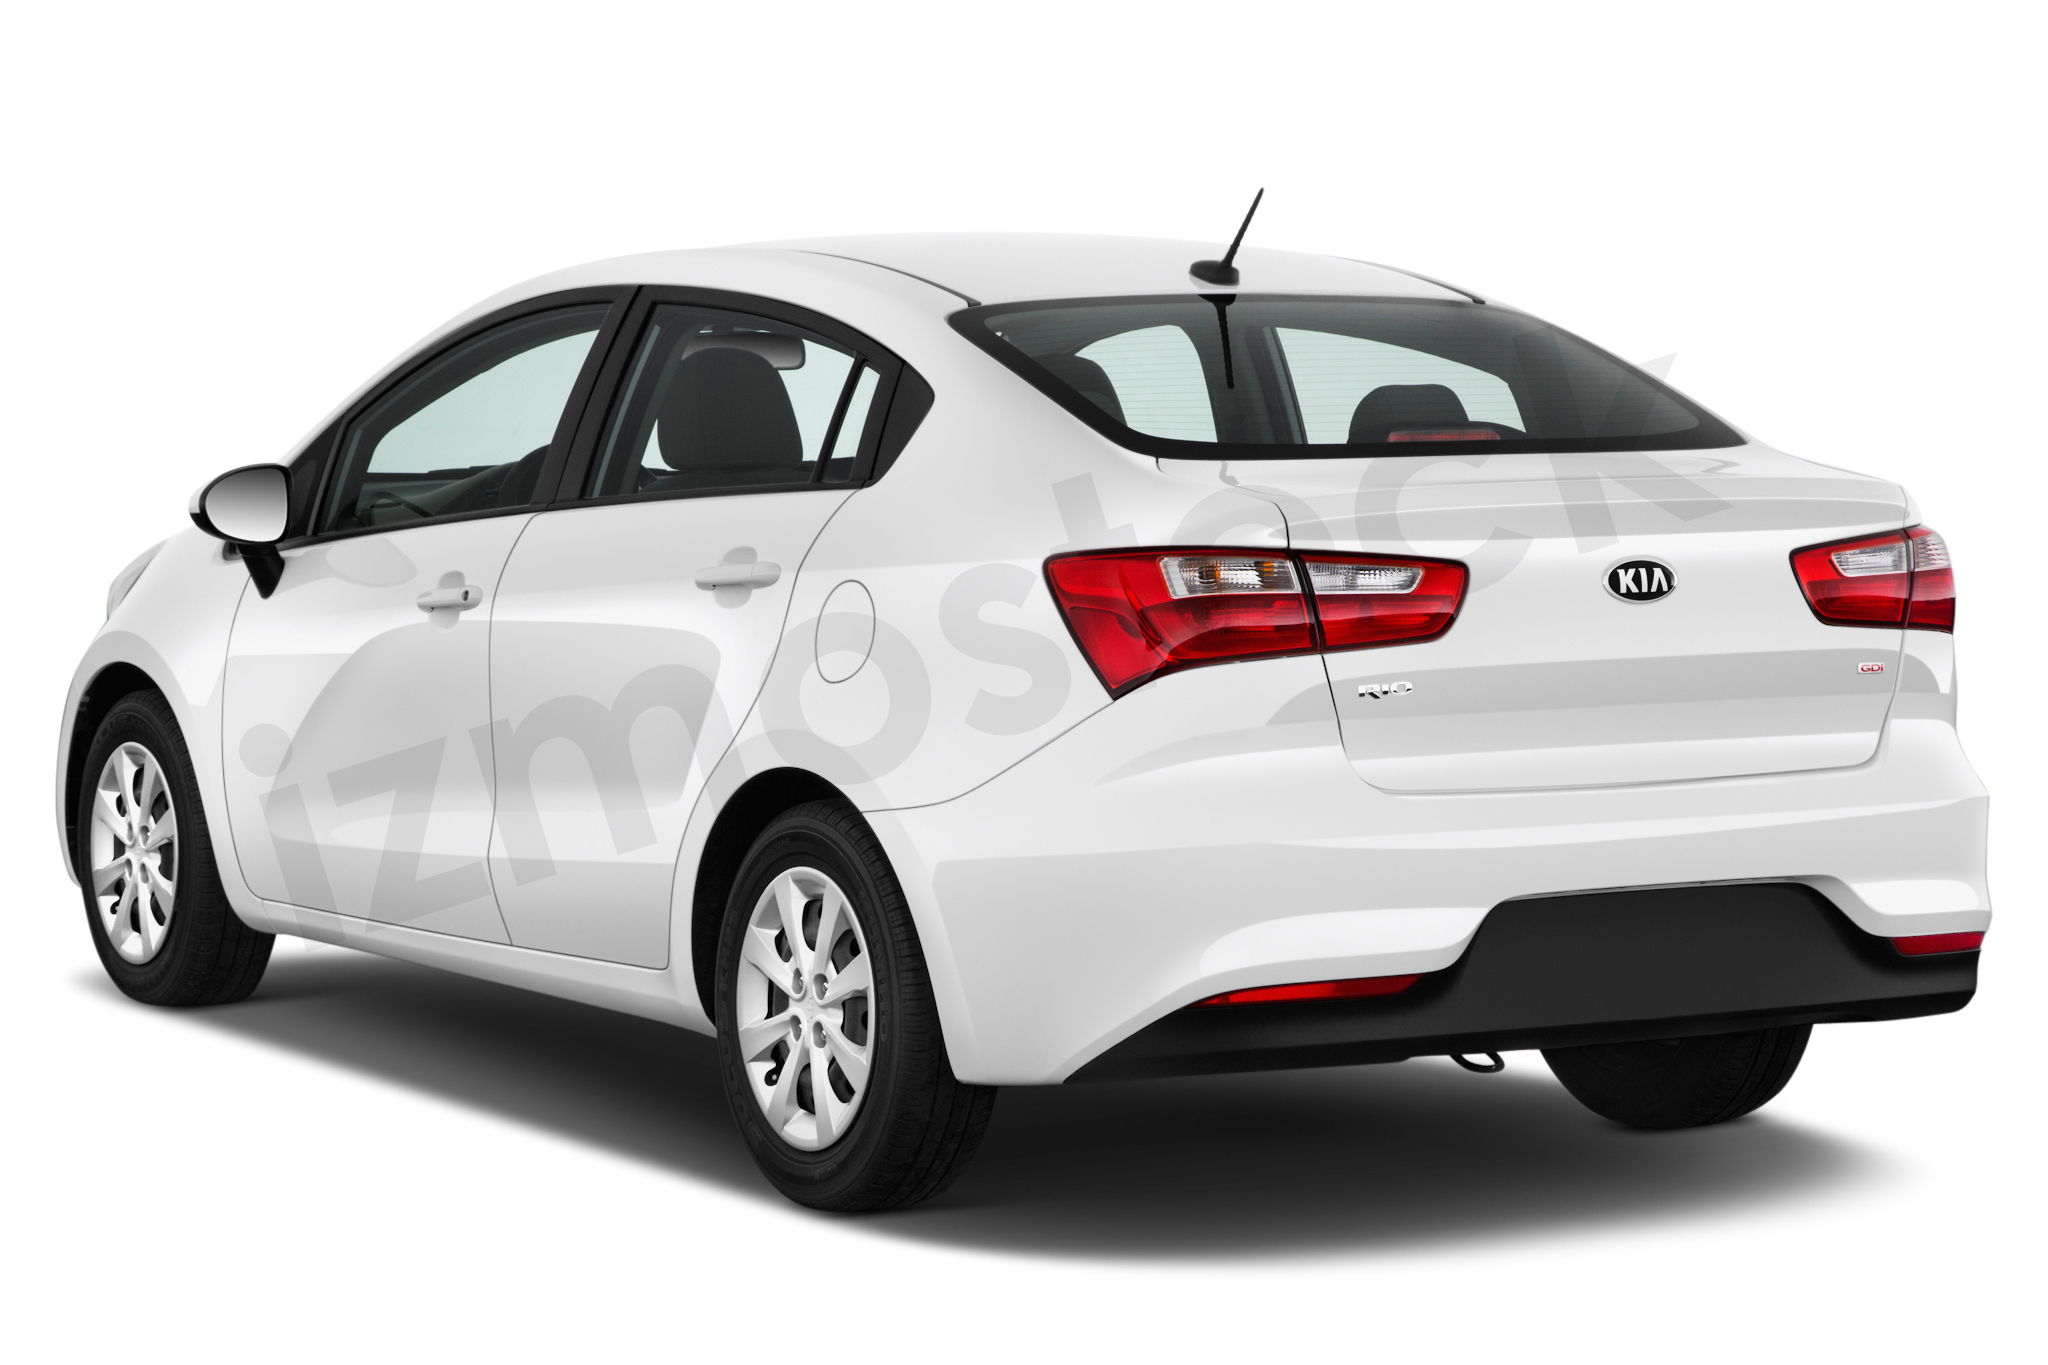 2016 kia rio lx restyled grille and taillights improved interiors. Black Bedroom Furniture Sets. Home Design Ideas